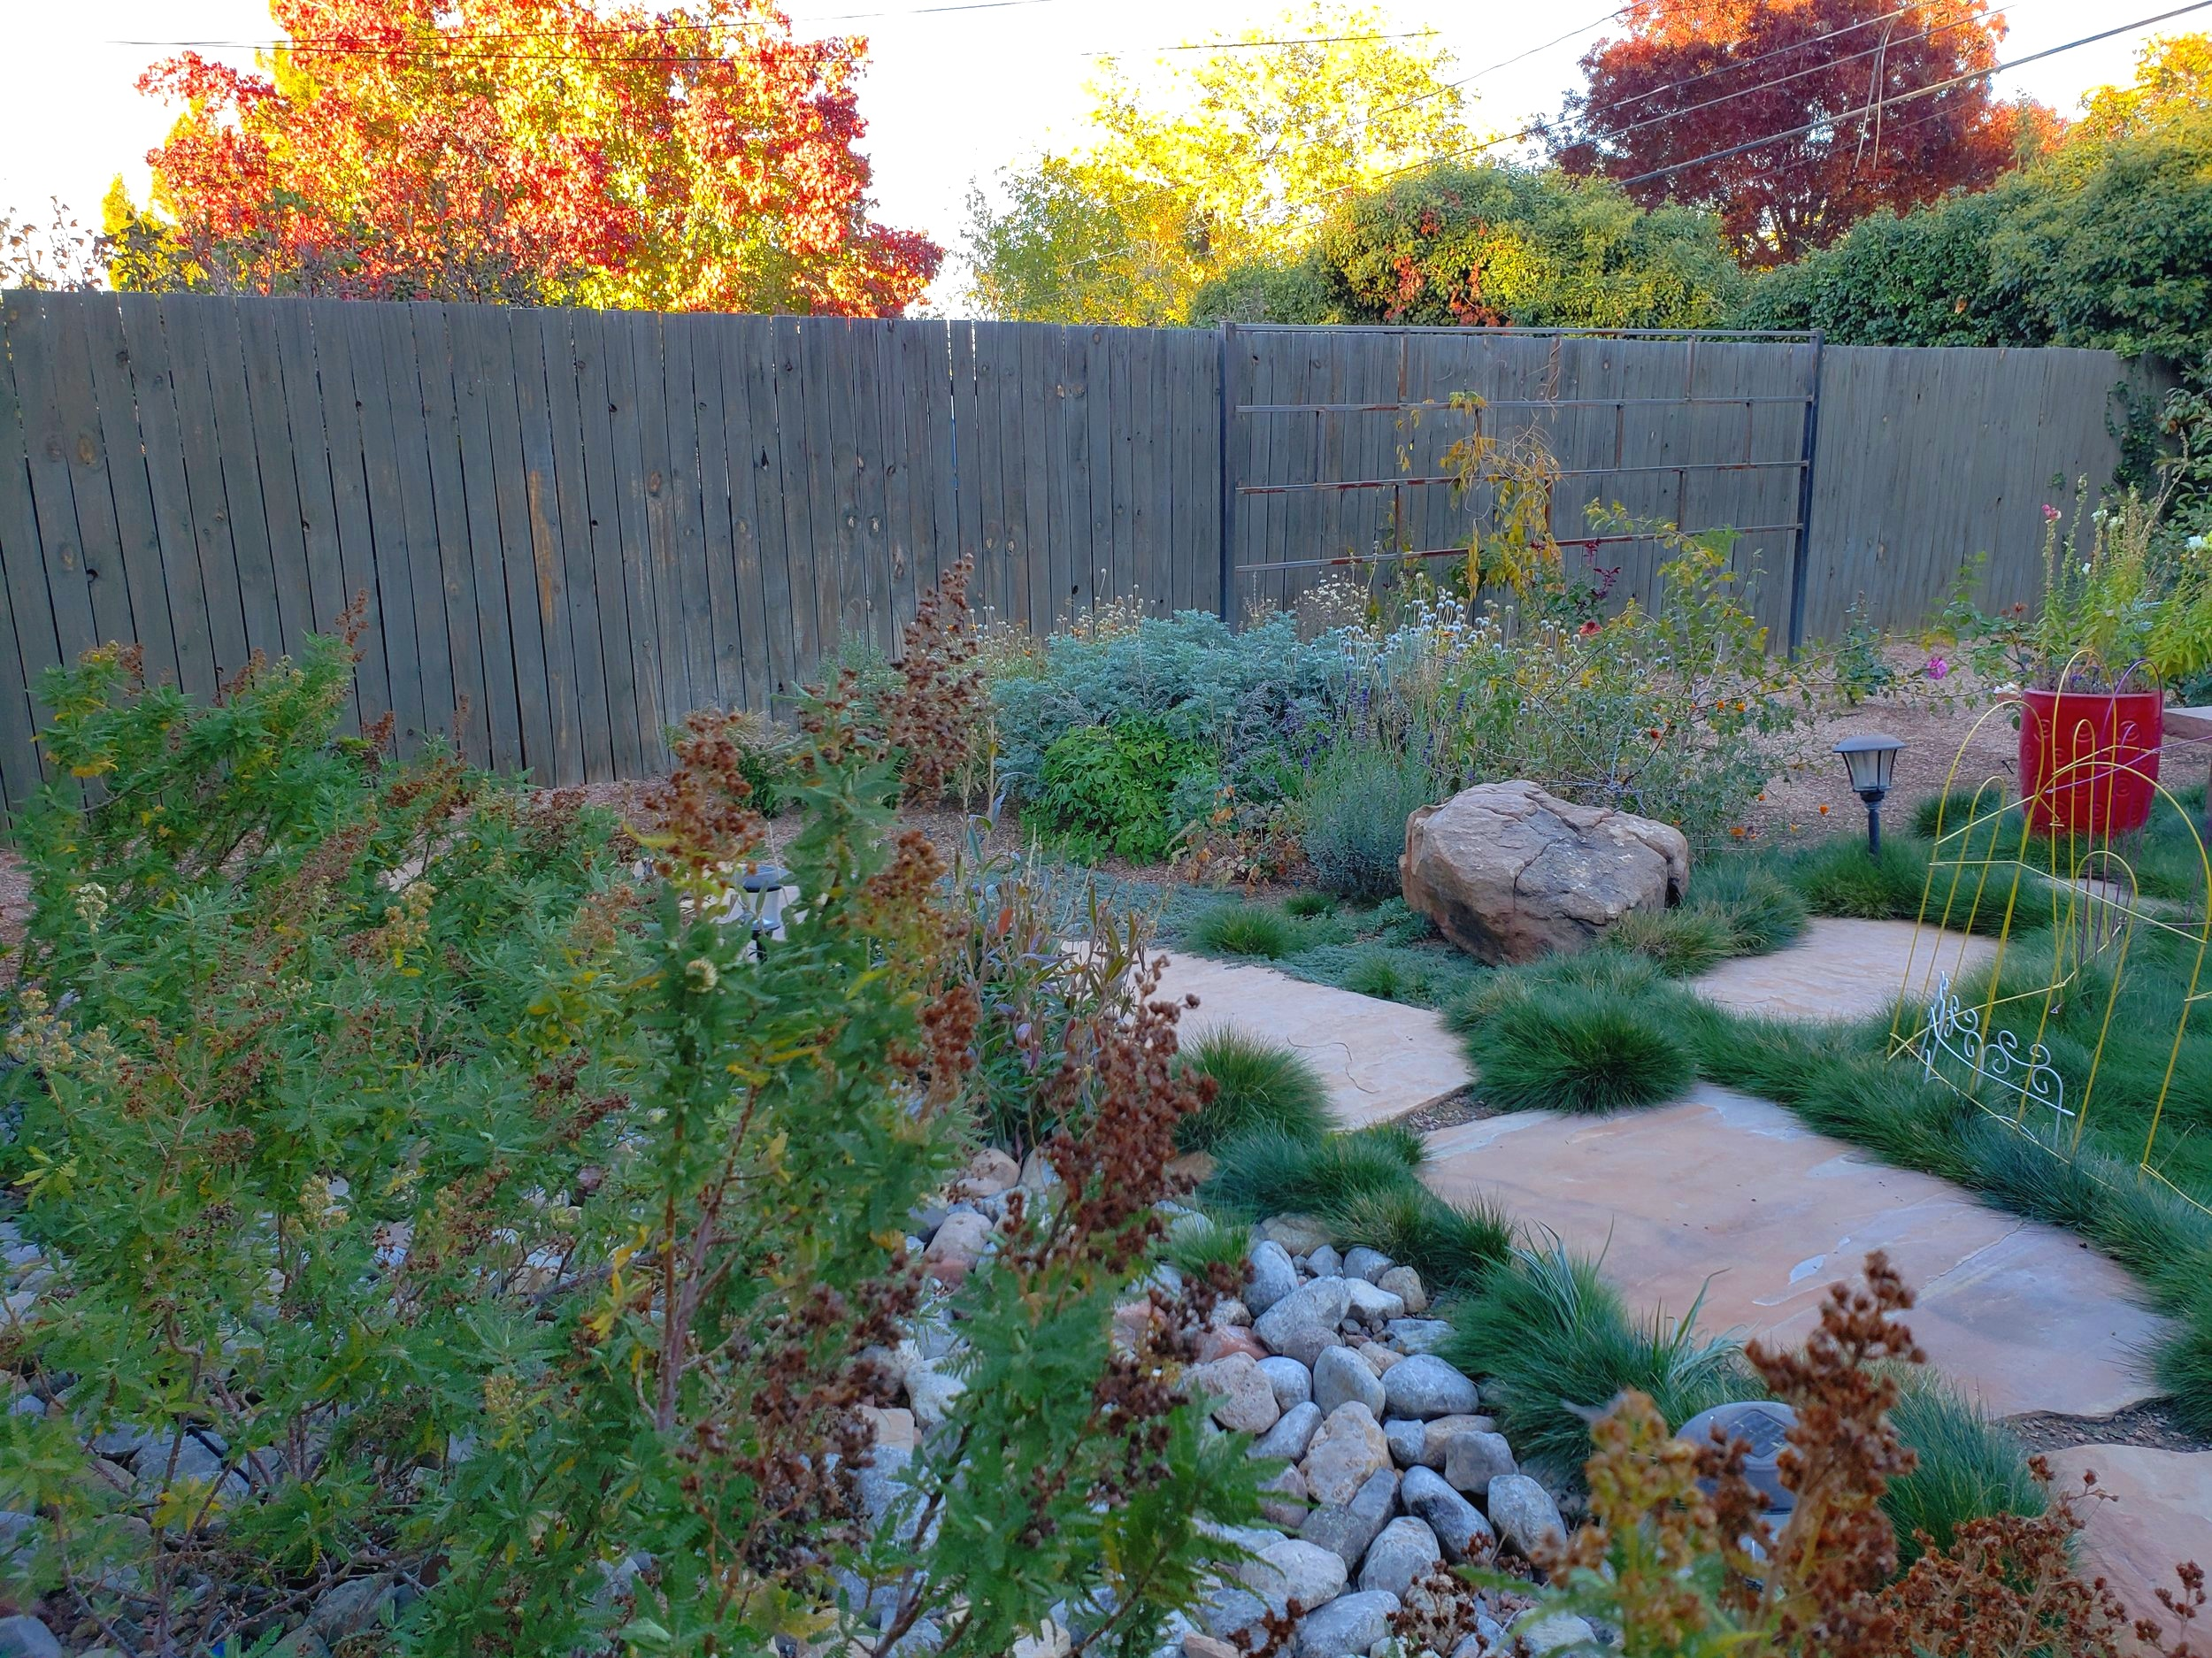 An abundance of native shrubs, wildflowers and groundcovers line the paths of this xeric garden to create different heights, textures and color year round.   #southwesthorticulture #horticulture #landscapes #landscaping #landscapedesign #nativeplants #xeriscaping #xeriscape #waterconservation #gardening #albuquerque #newmexico